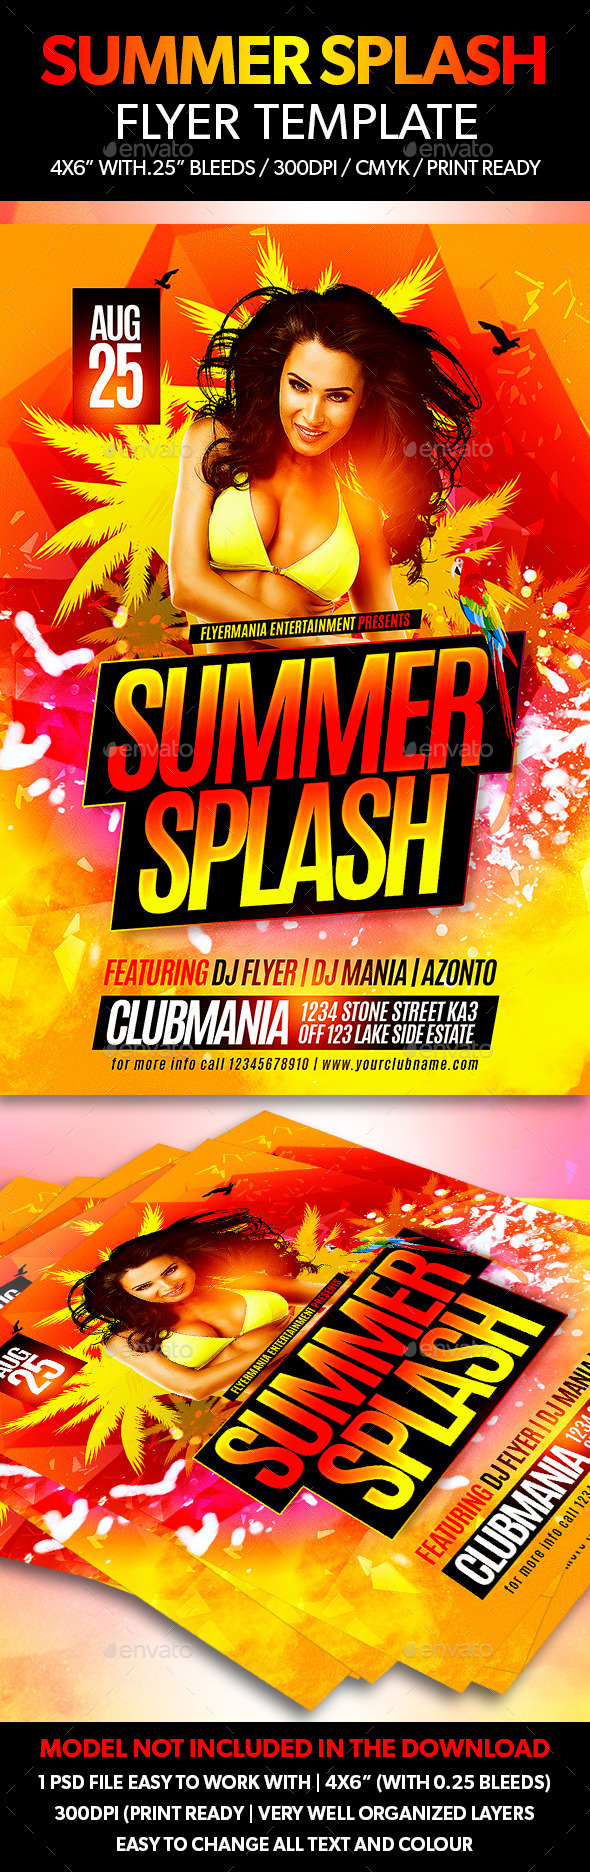 Summer Splash Flyer Template